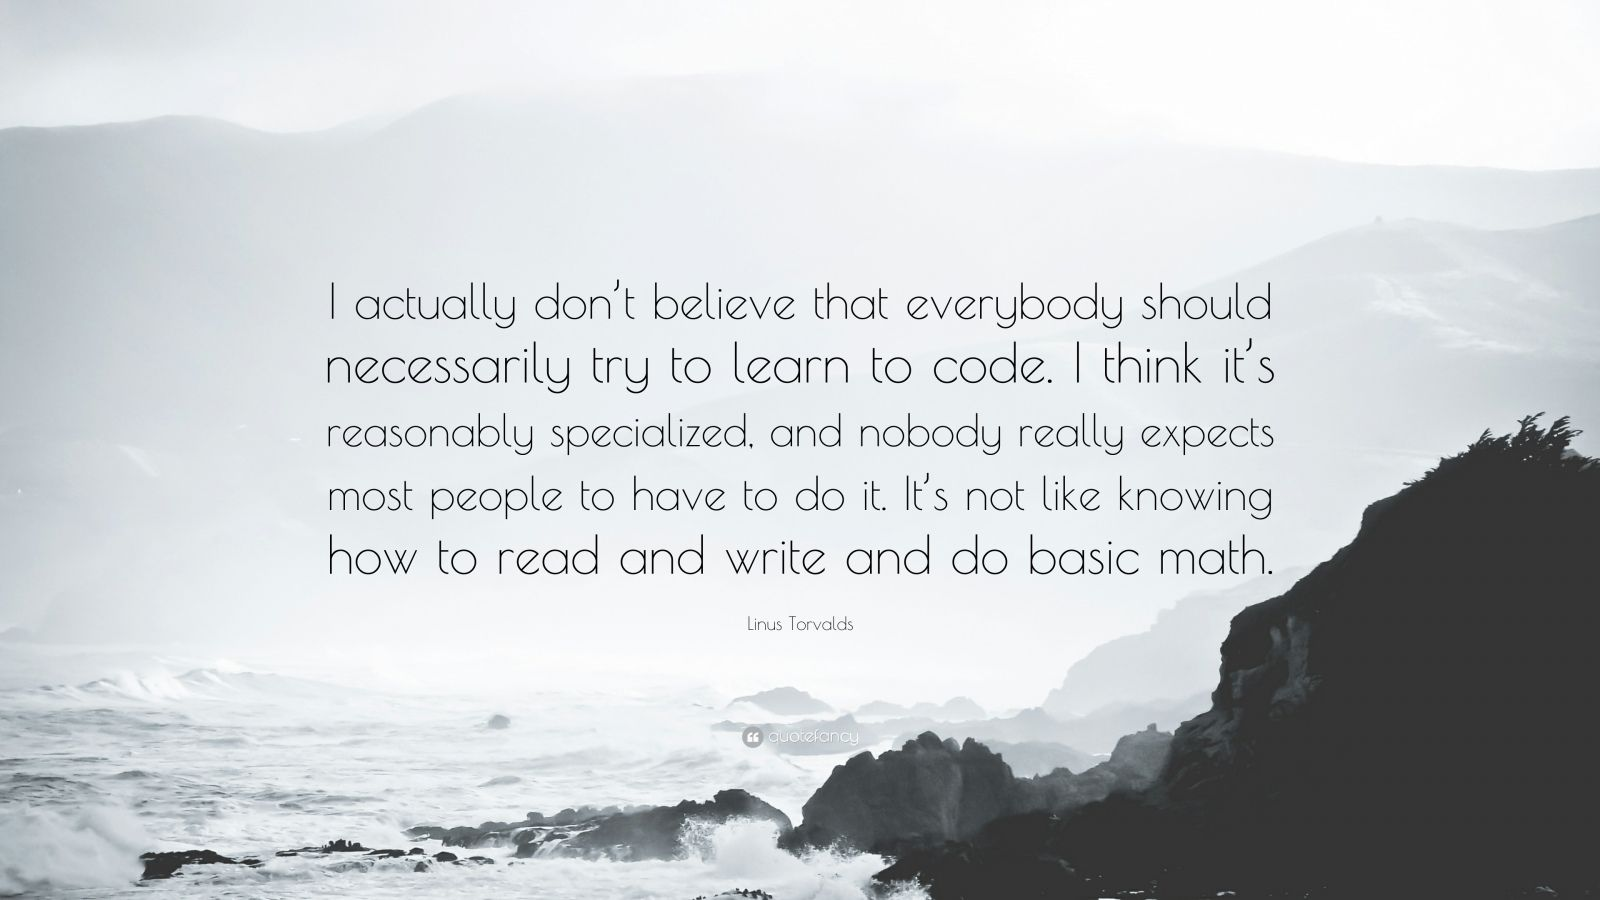 """Linus Torvalds Quote: """"I actually don't believe that everybody should necessarily try to learn to code. I think it's reasonably specialized, and nobody really expects most people to have to do it. It's not like knowing how to read and write and do basic math."""""""